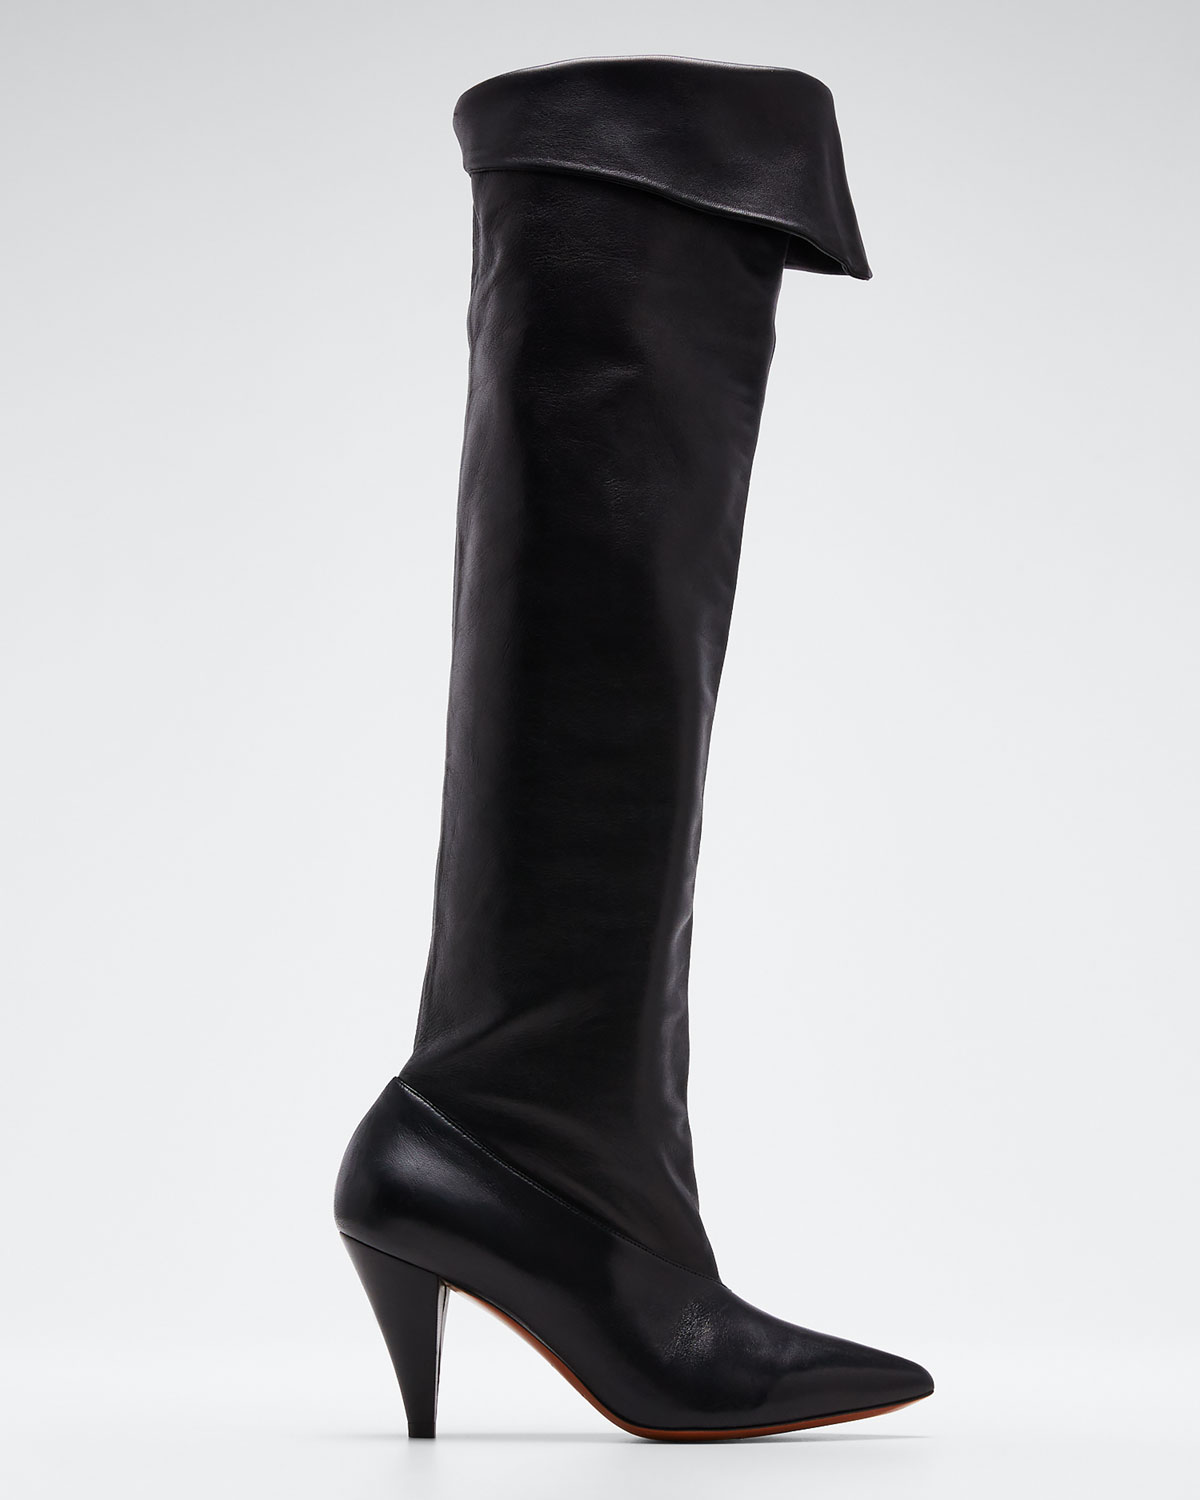 Givenchy Boots FOLD-DOWN OVER-THE-KNEE BOOTS